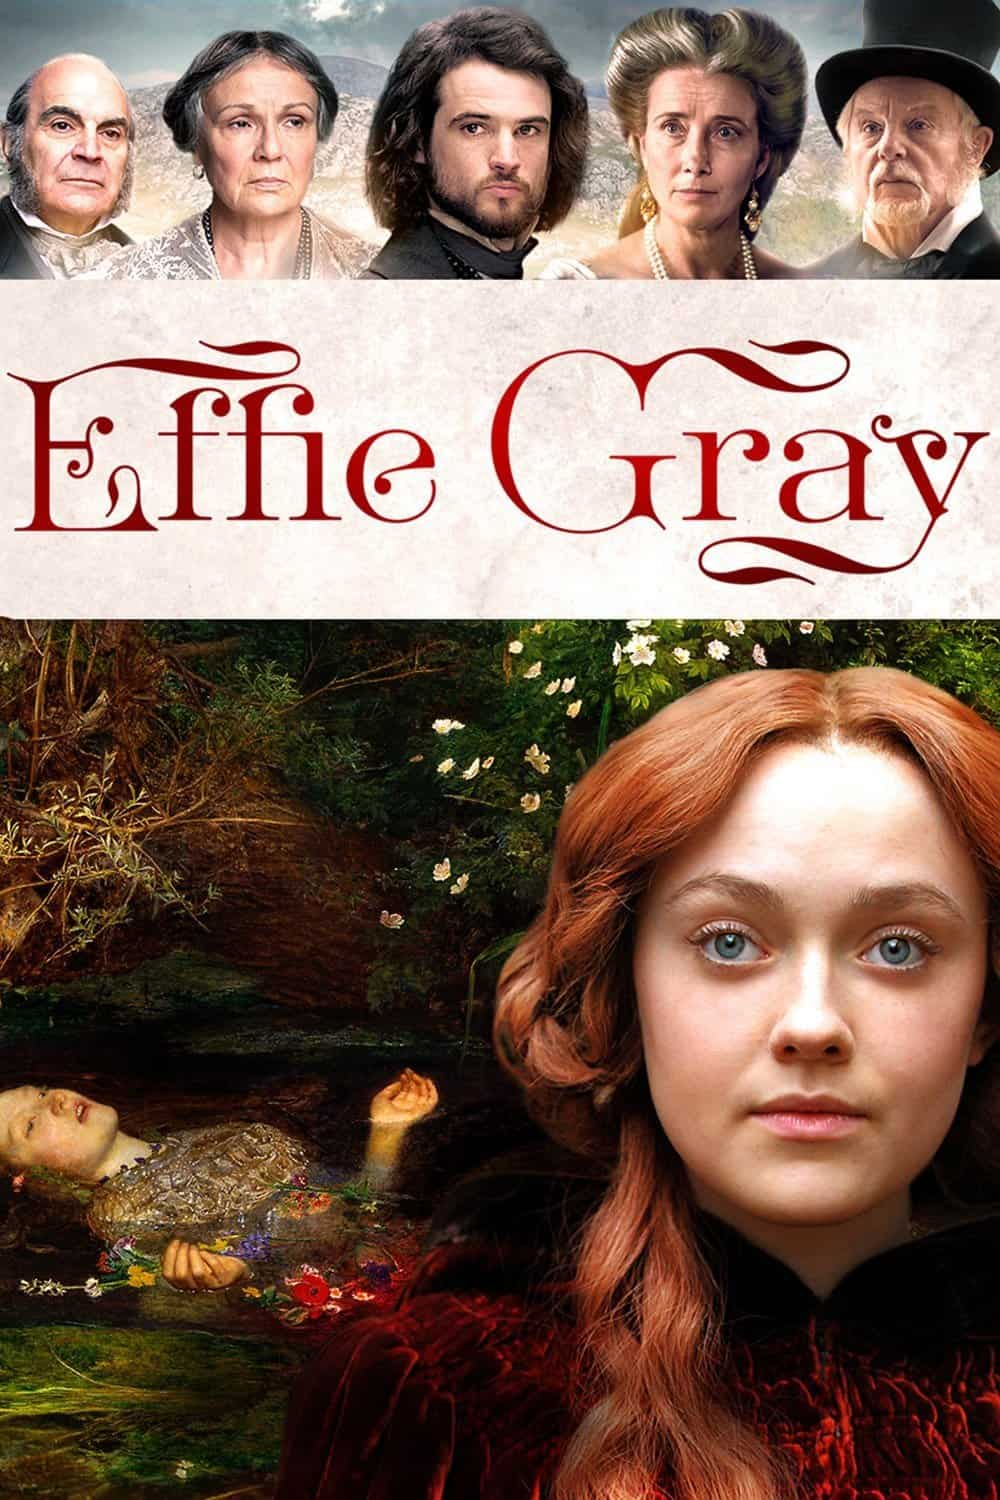 Effie Gray, 2014